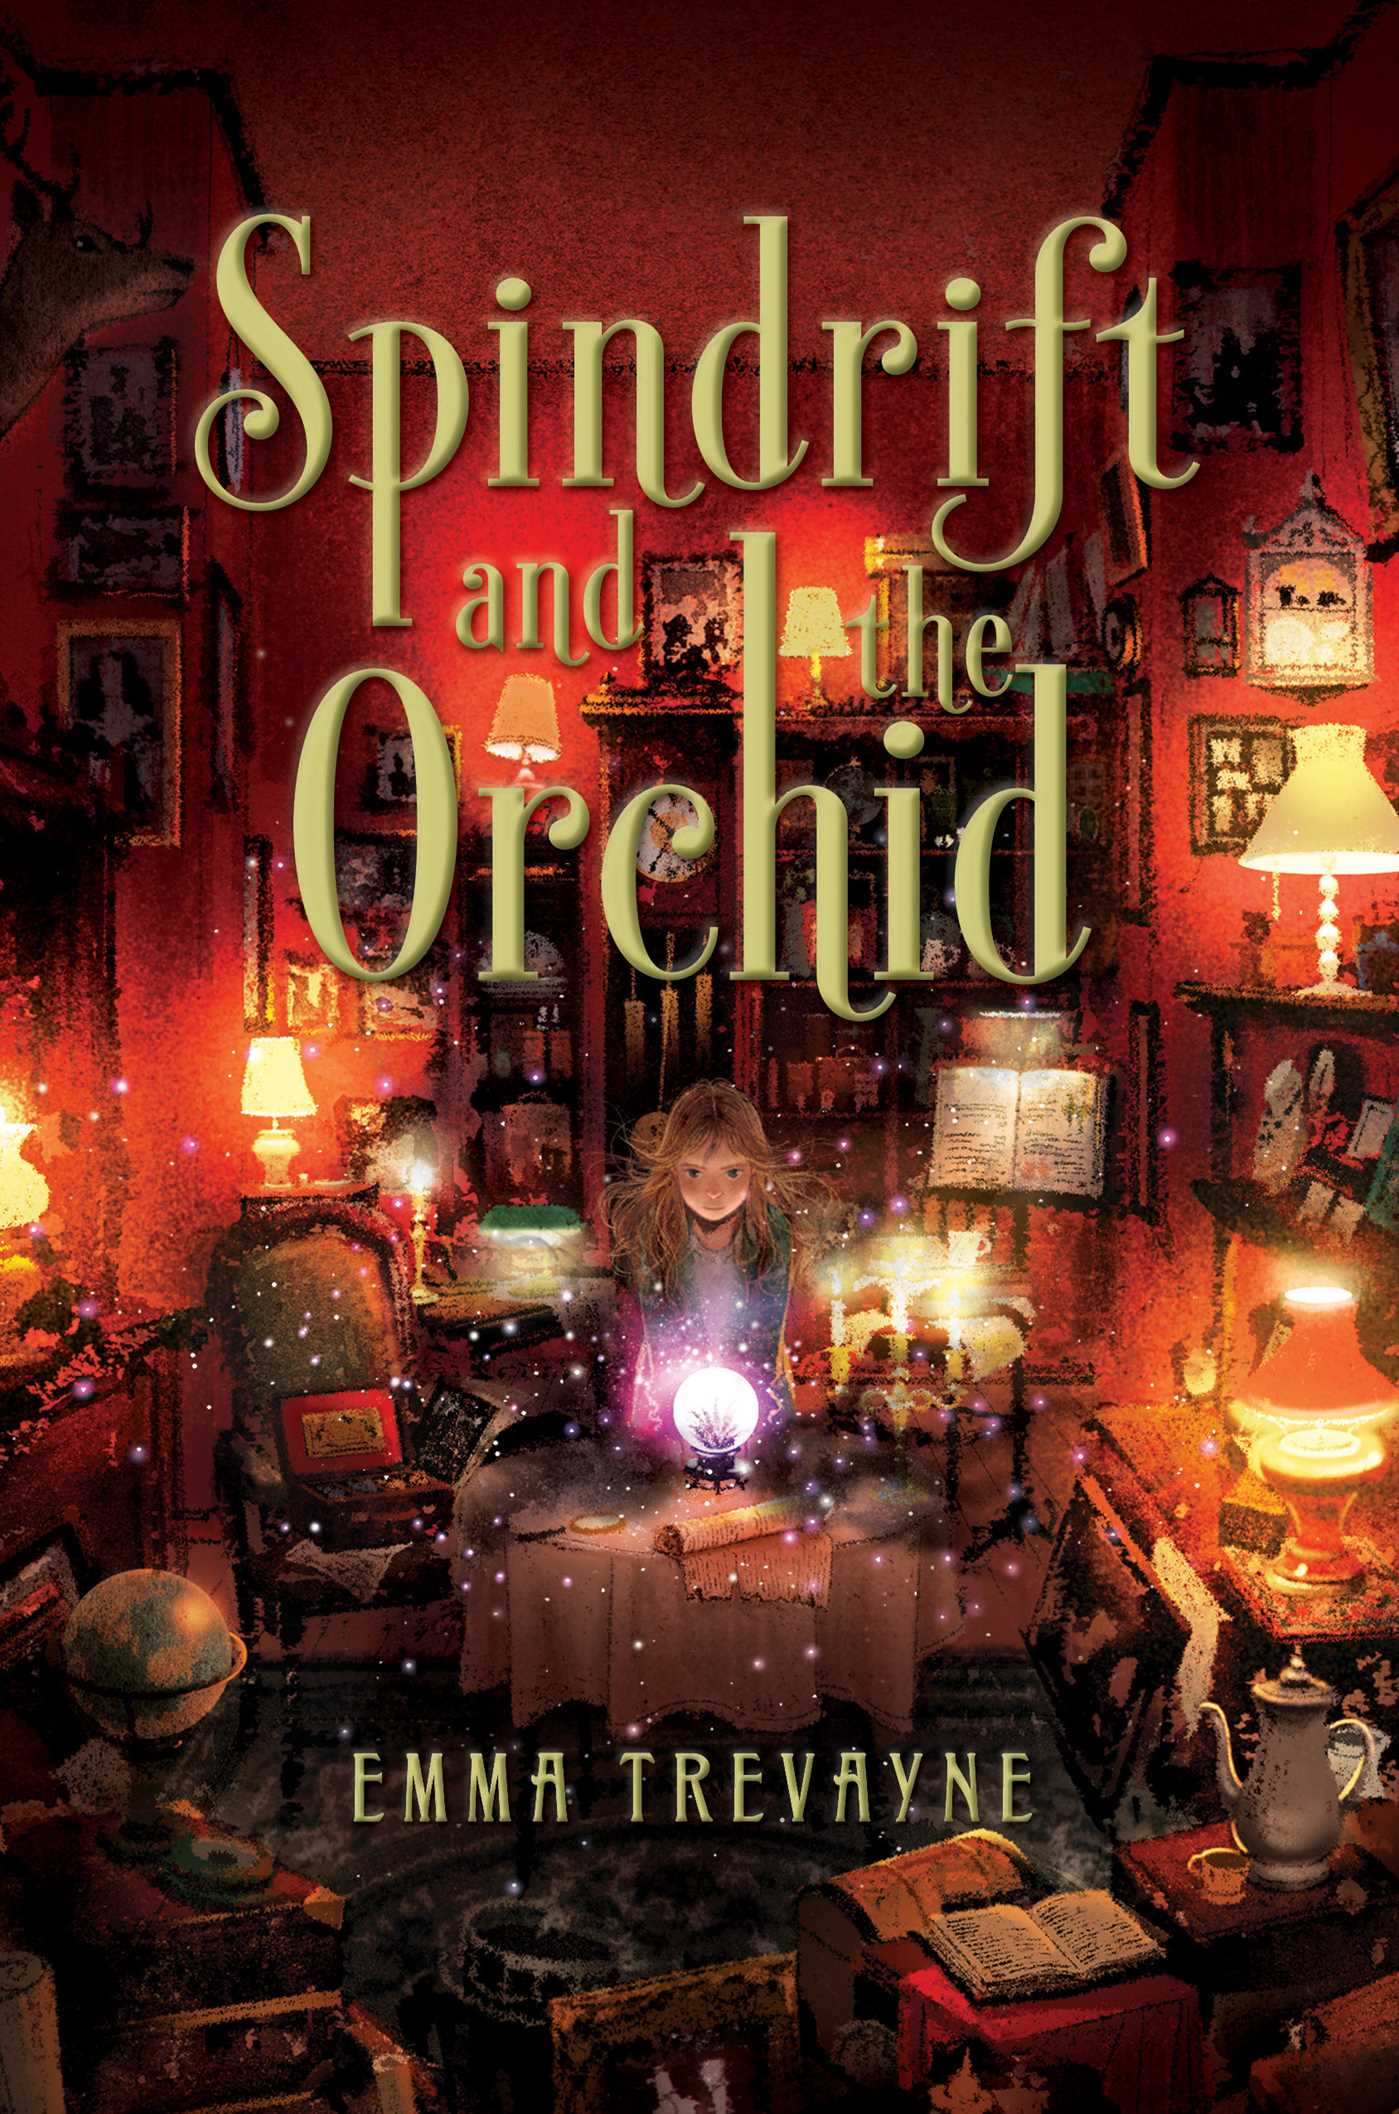 Spindrift and the orchid 9781481462594 hr